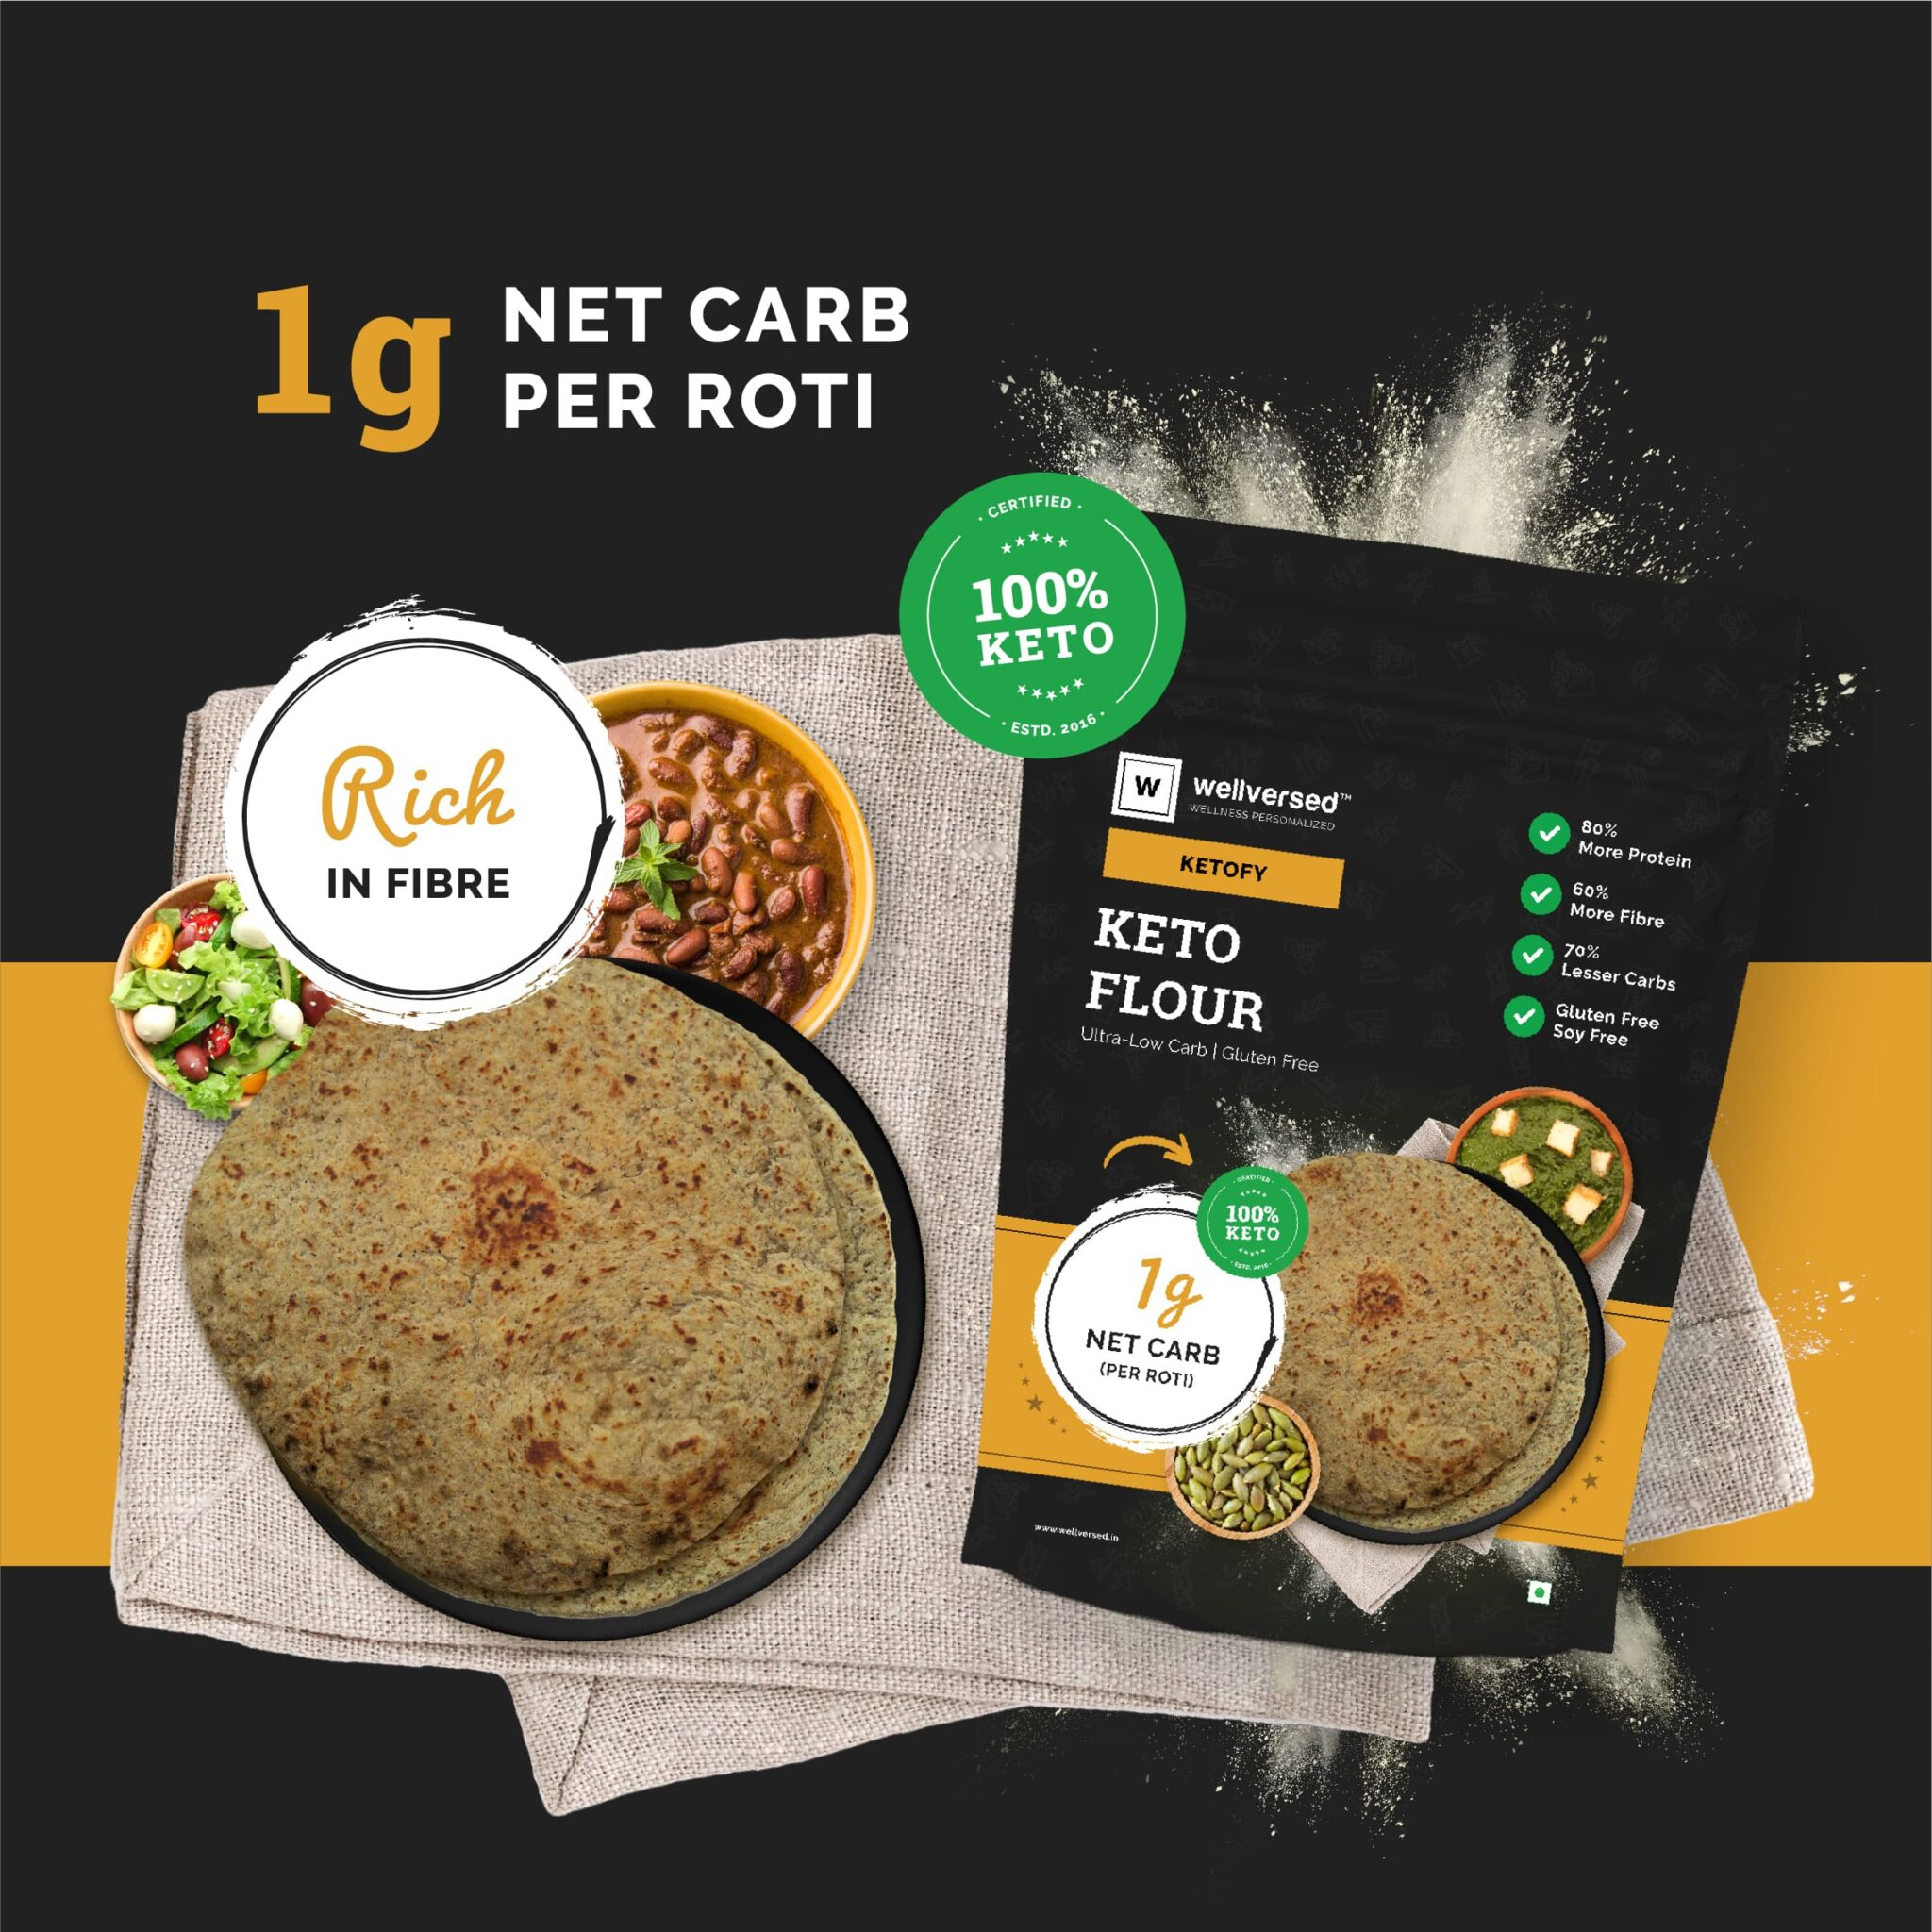 keto flour 500g  low carb flour for weight loss i buy